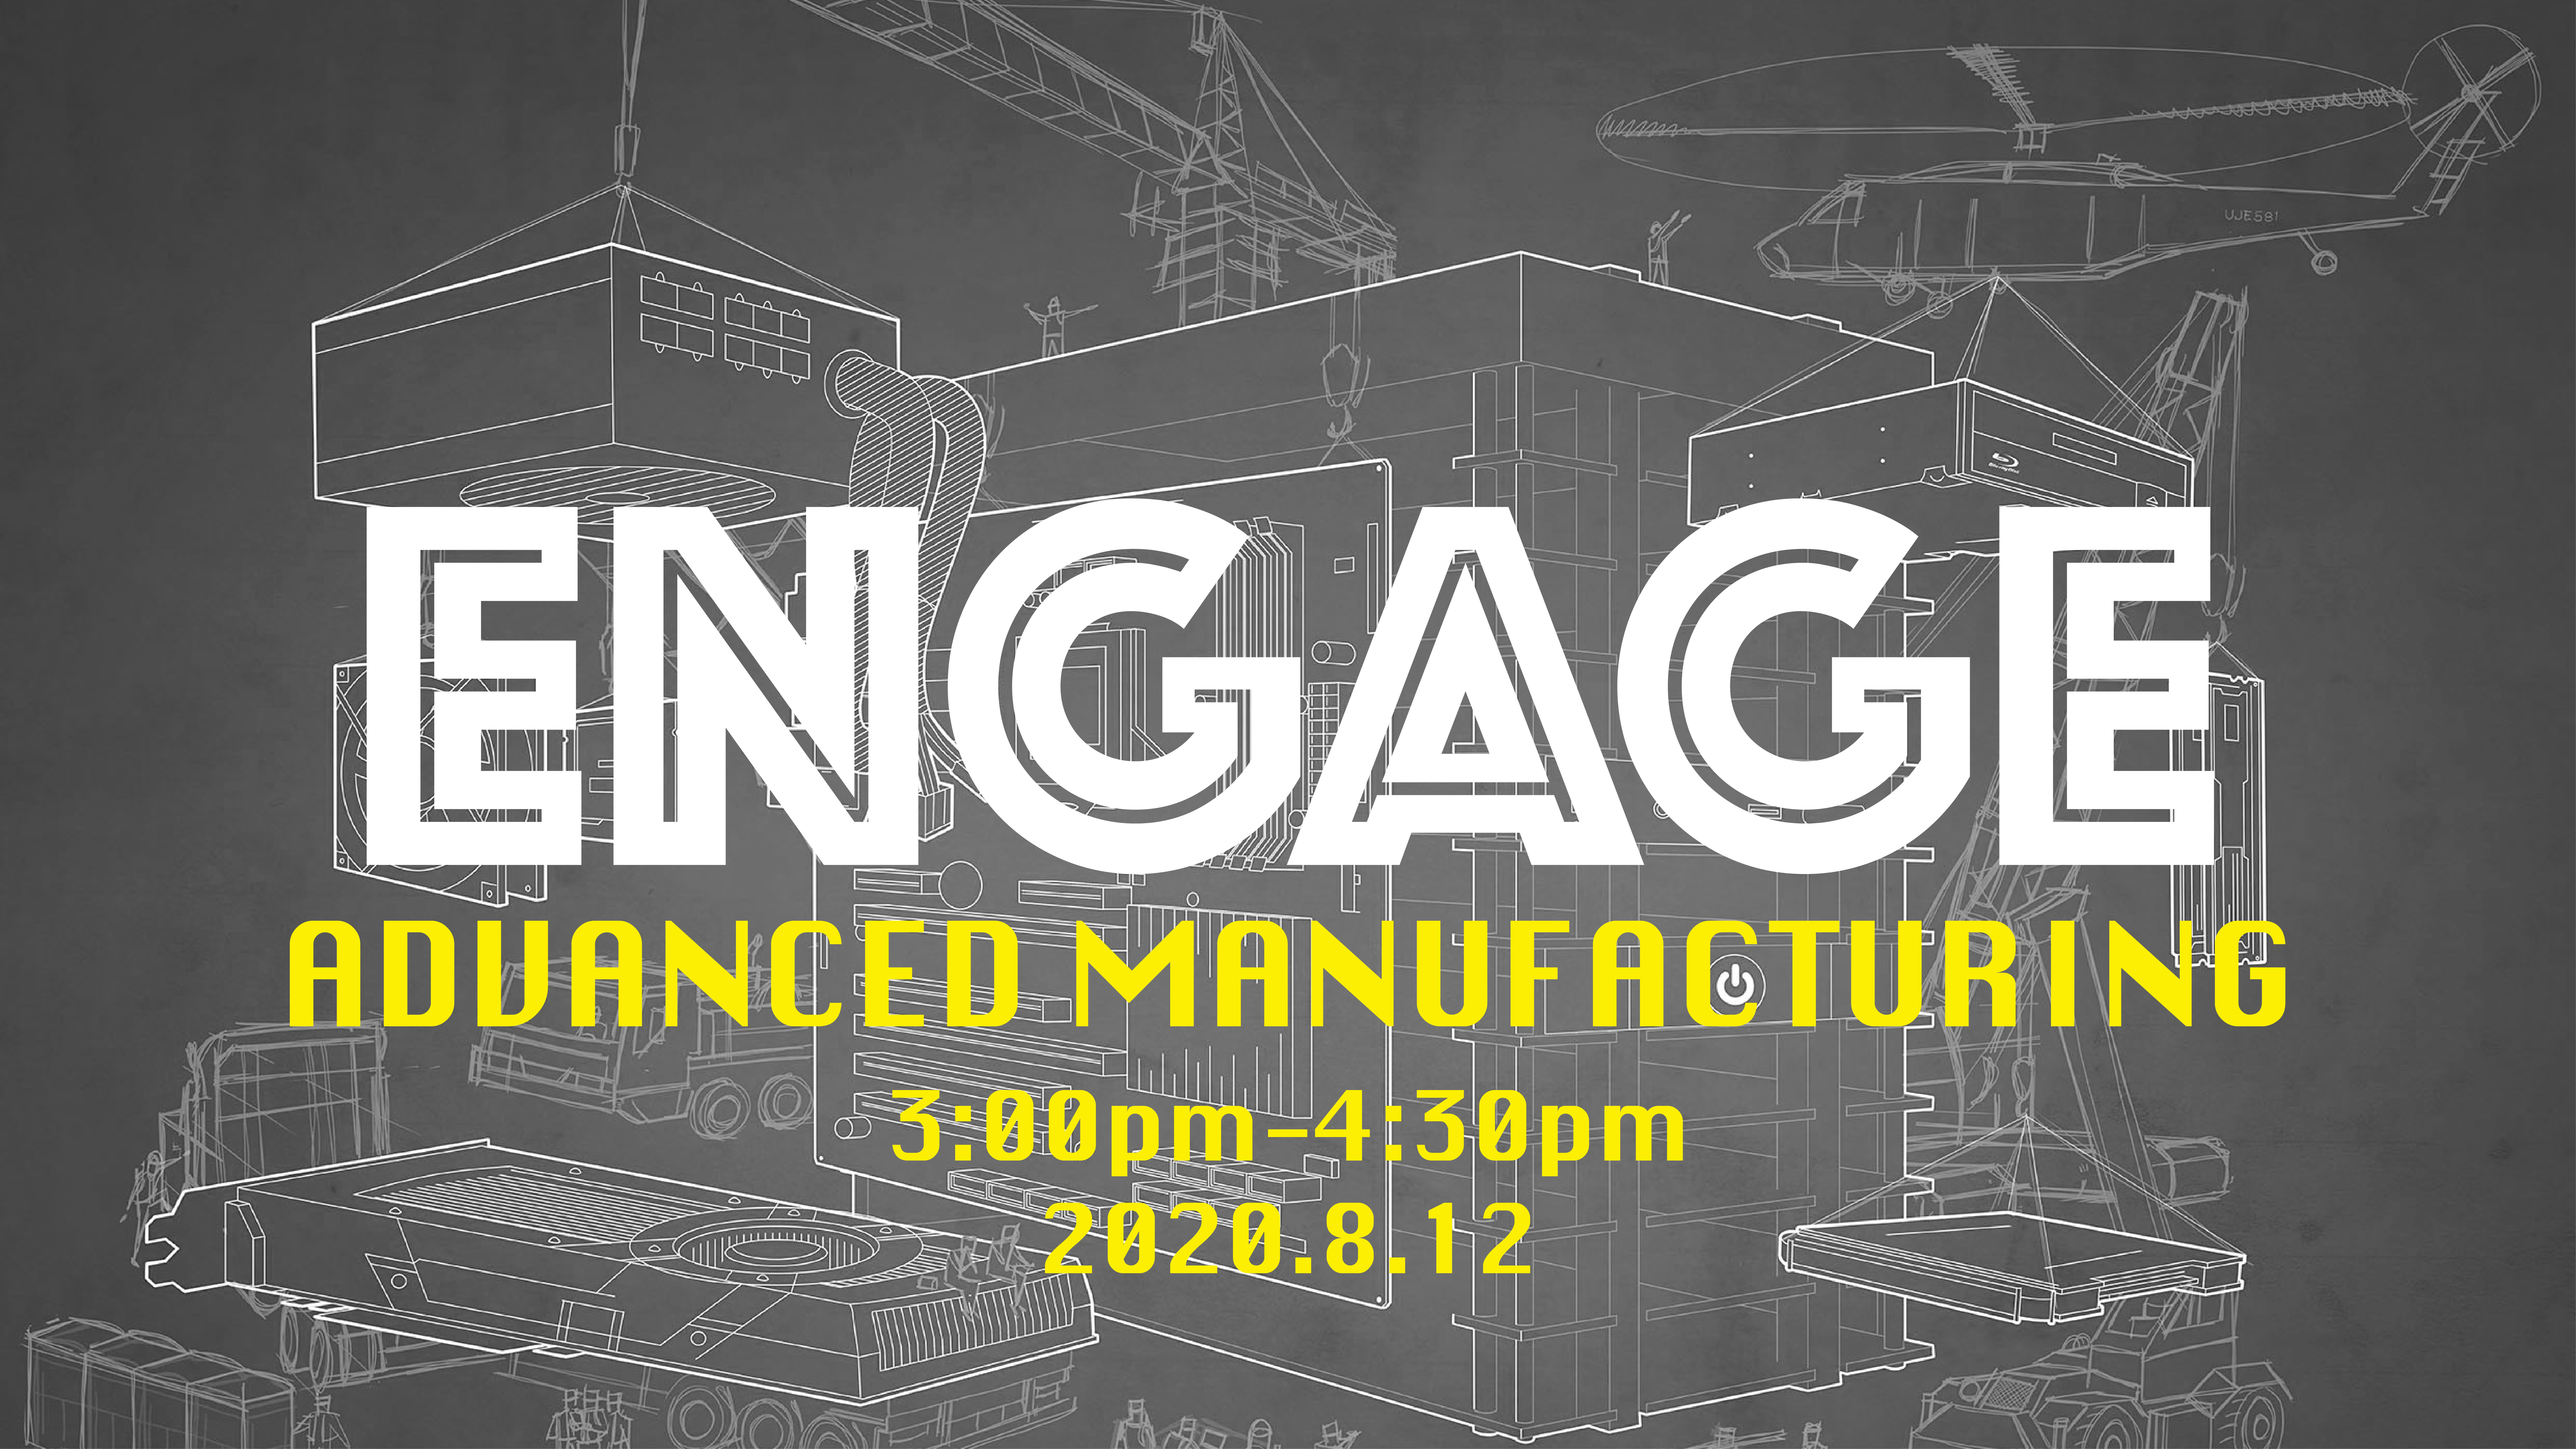 ENGAGE-ADVANCED MANUFACTURING